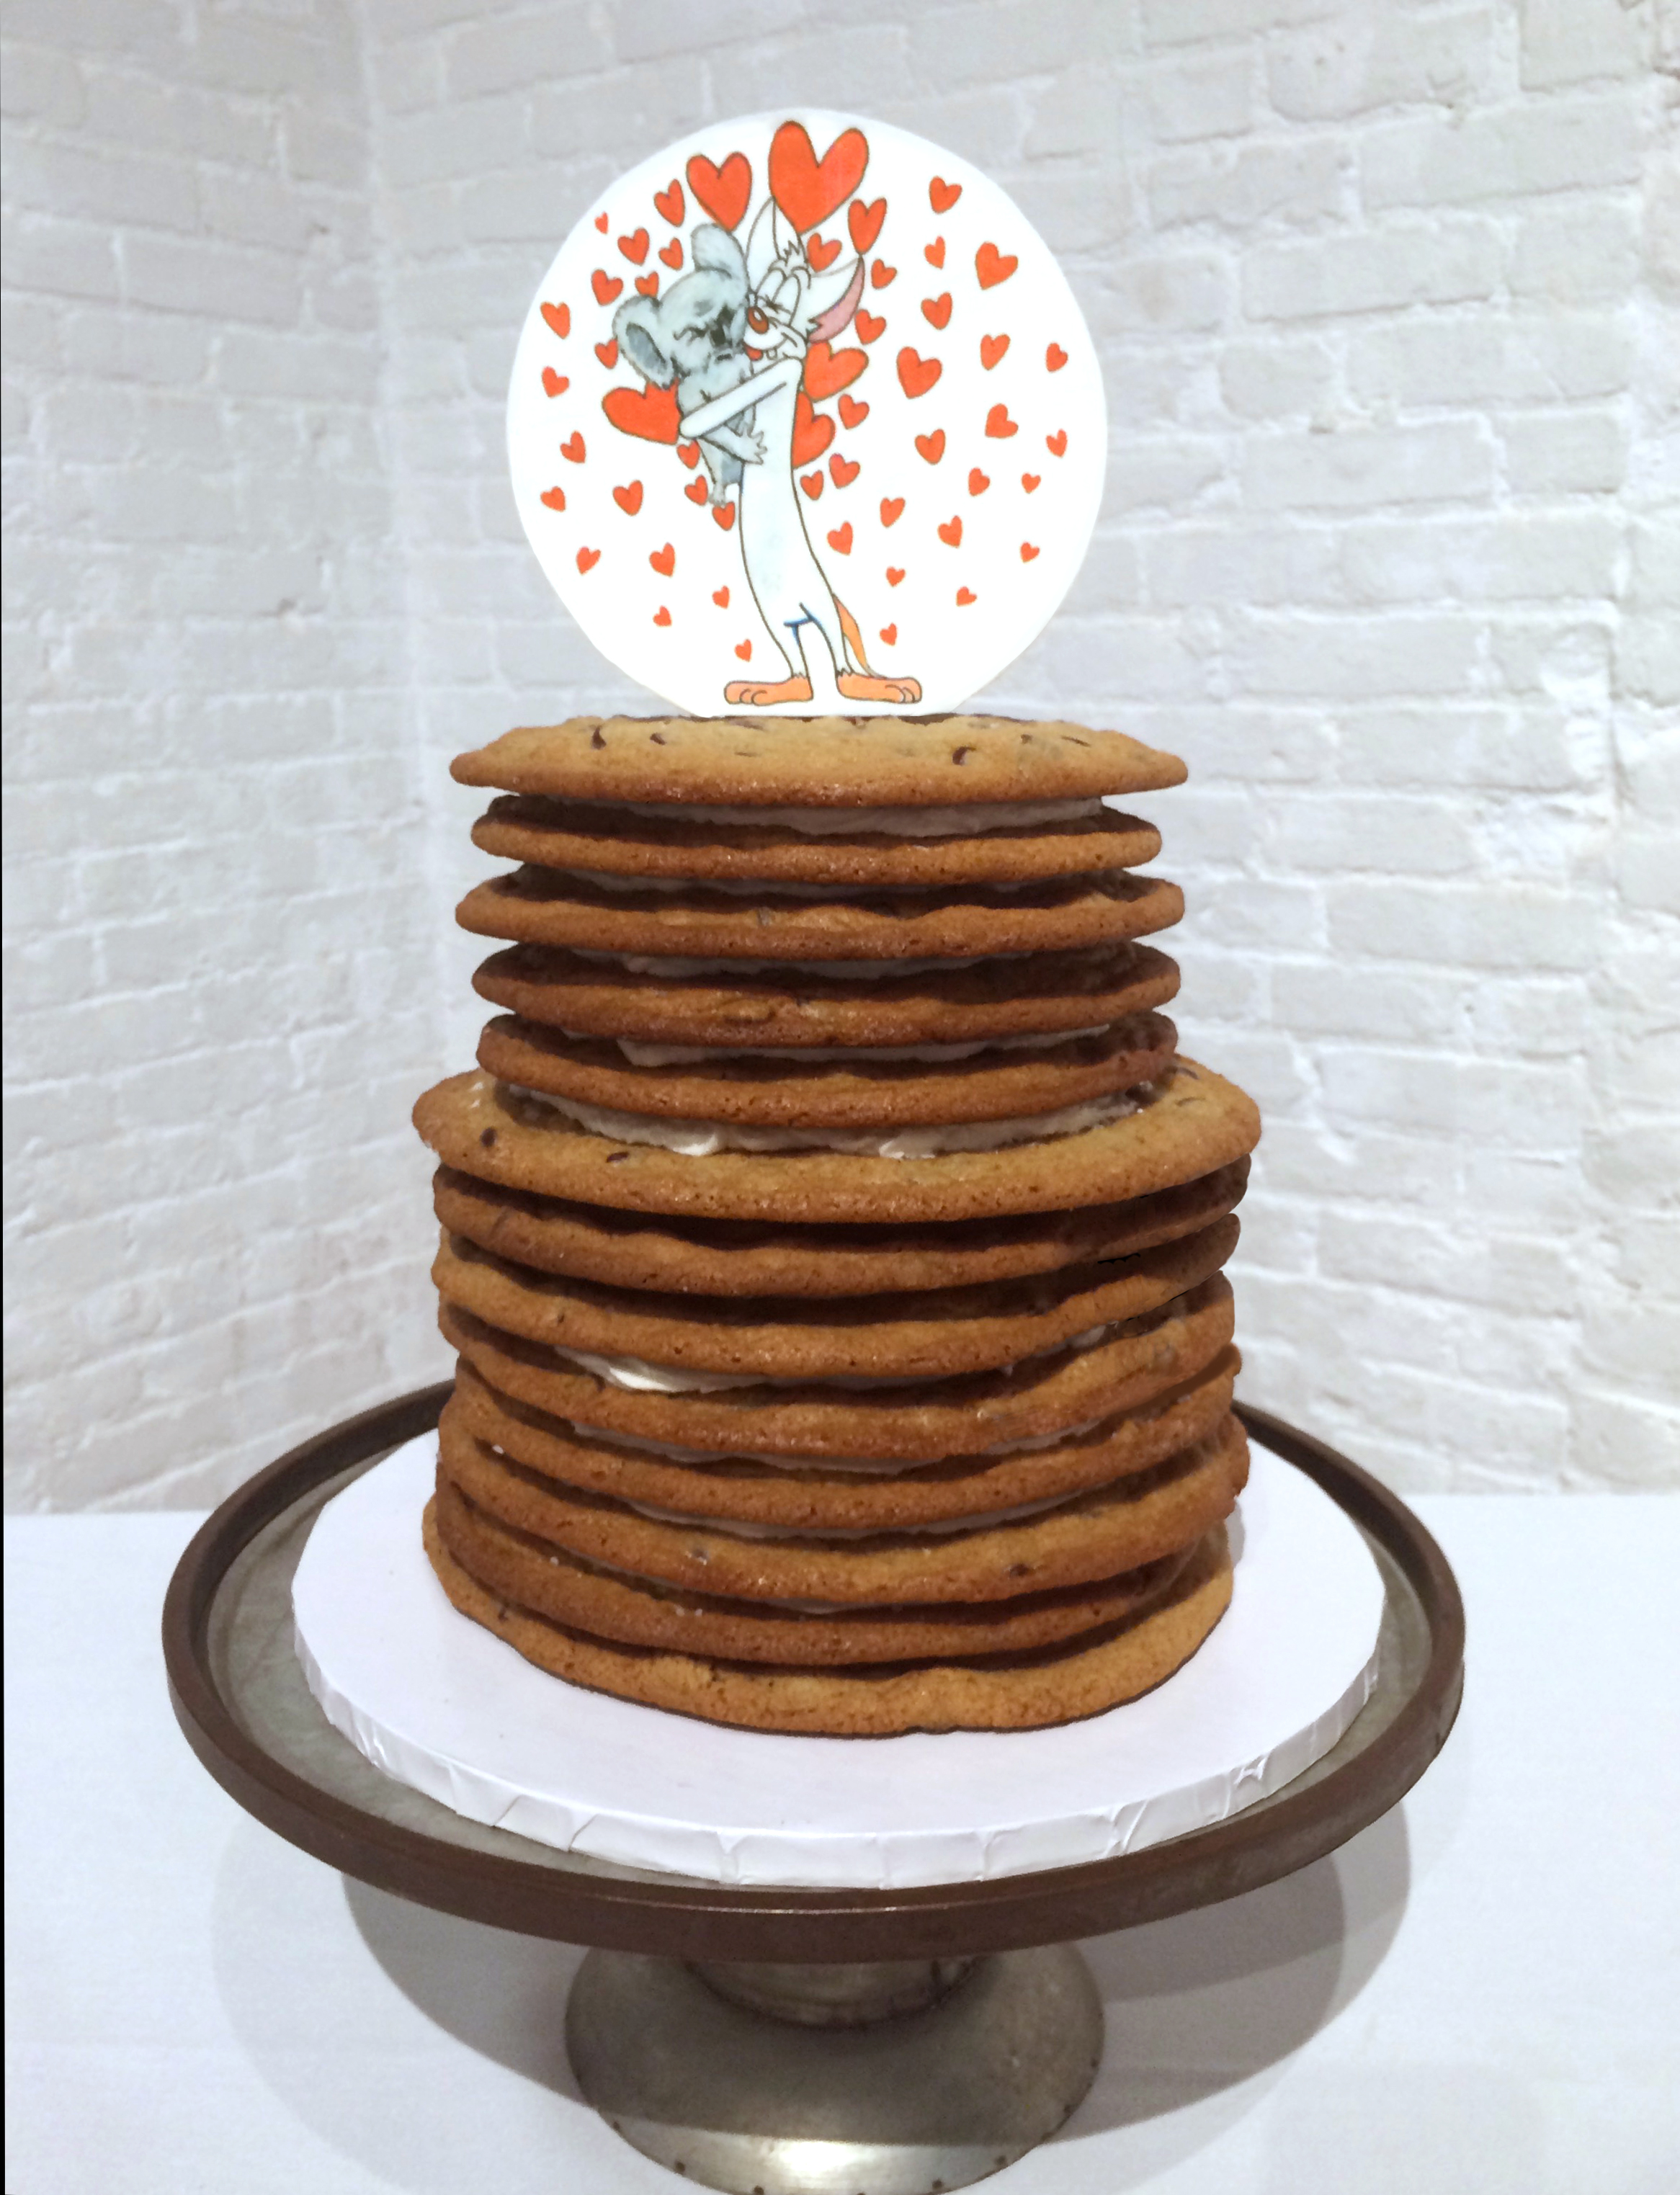 Chocolate chip wedding cake